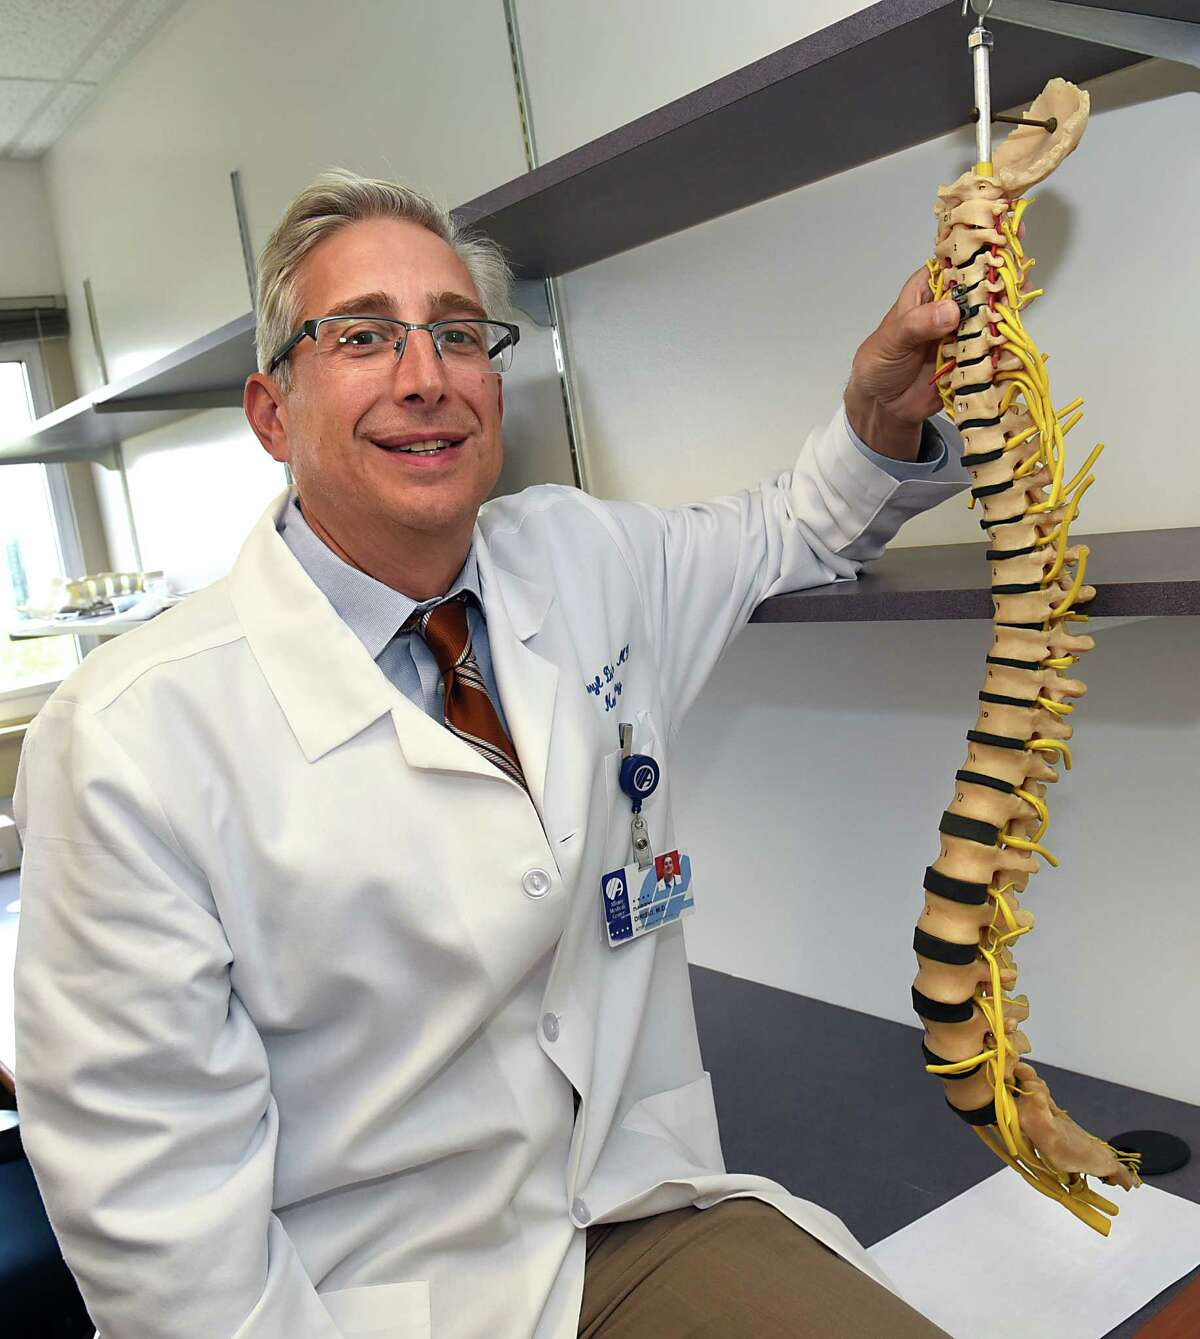 Dr. Darryl DiRisio neurosurgeon, department of neurosurgery, holds a reveal device on a ReVivo spine model at the Biomedical Acceleration Commercialization Center at Albany Medical Center on Thursday, Aug. 18, 2016 in Albany, N.Y. (Lori Van Buren / Times Union)